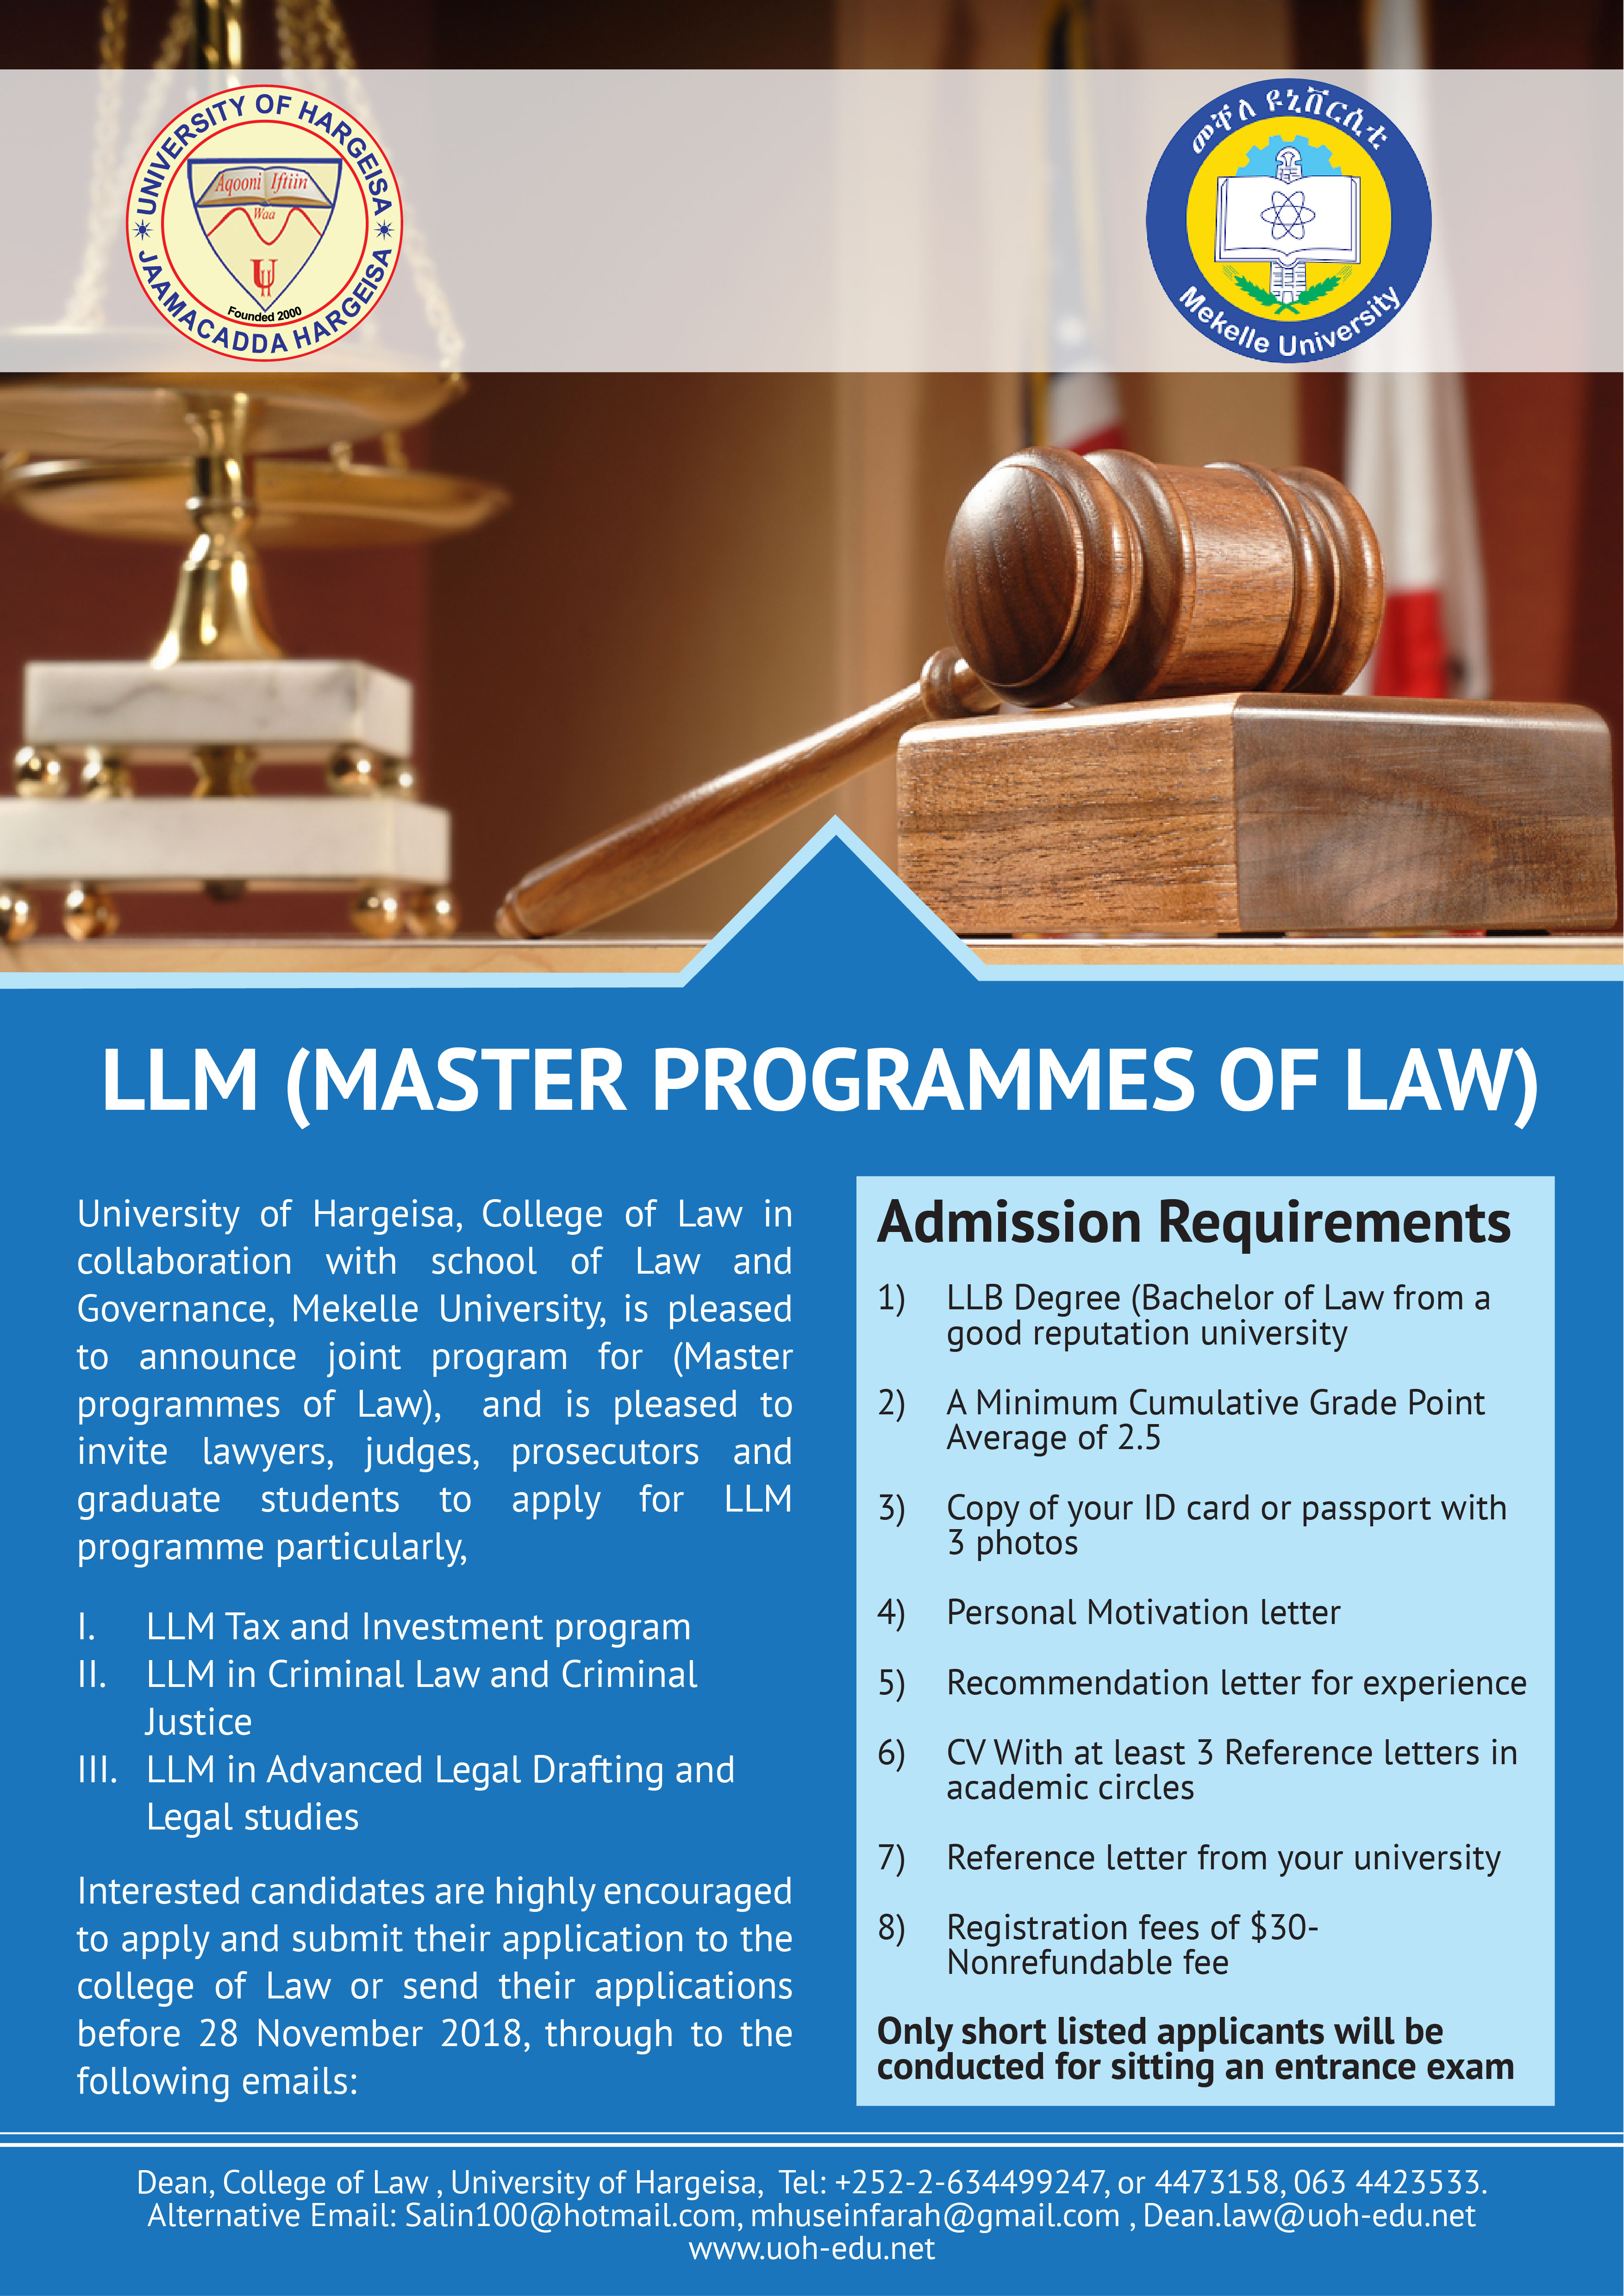 Joint Masters Programmes in Law - University of Hargeisa